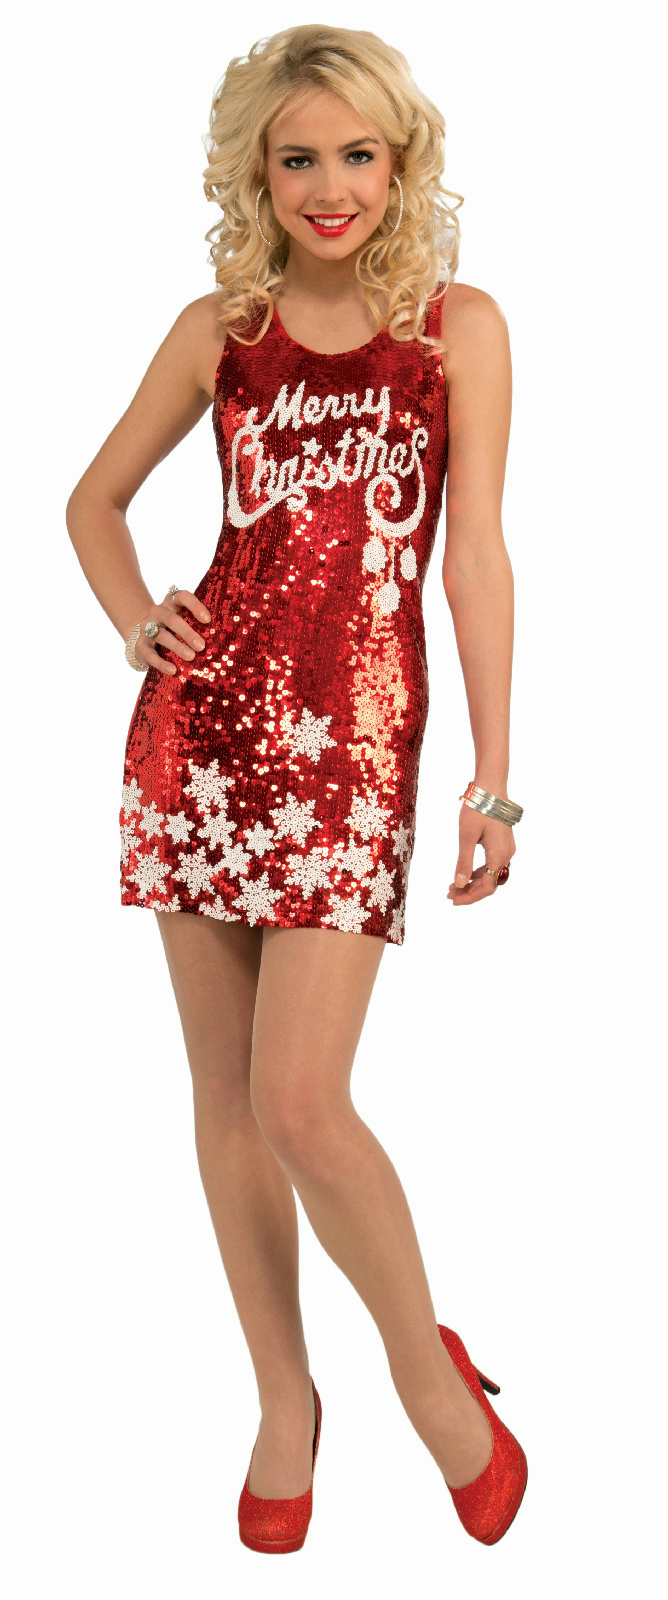 Details about Women\'s Plus Size Racy Red Sequin Merry Christmas Party  Costume Dress XL 16-22